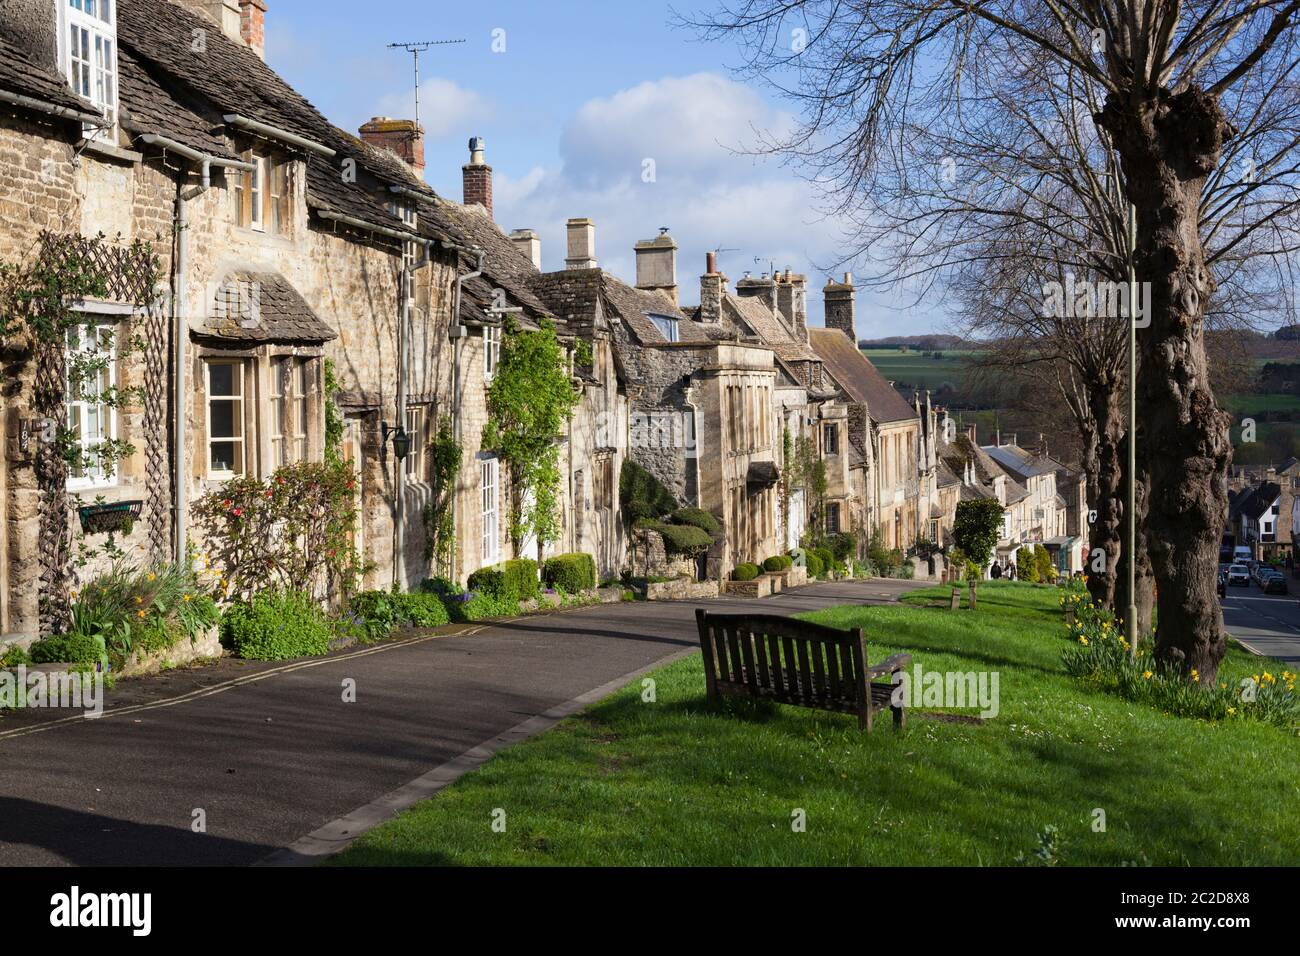 Cotswold cottages along The Hill, Burford, Cotswolds, Oxfordshire, England, United Kingdom, Europe Stock Photo